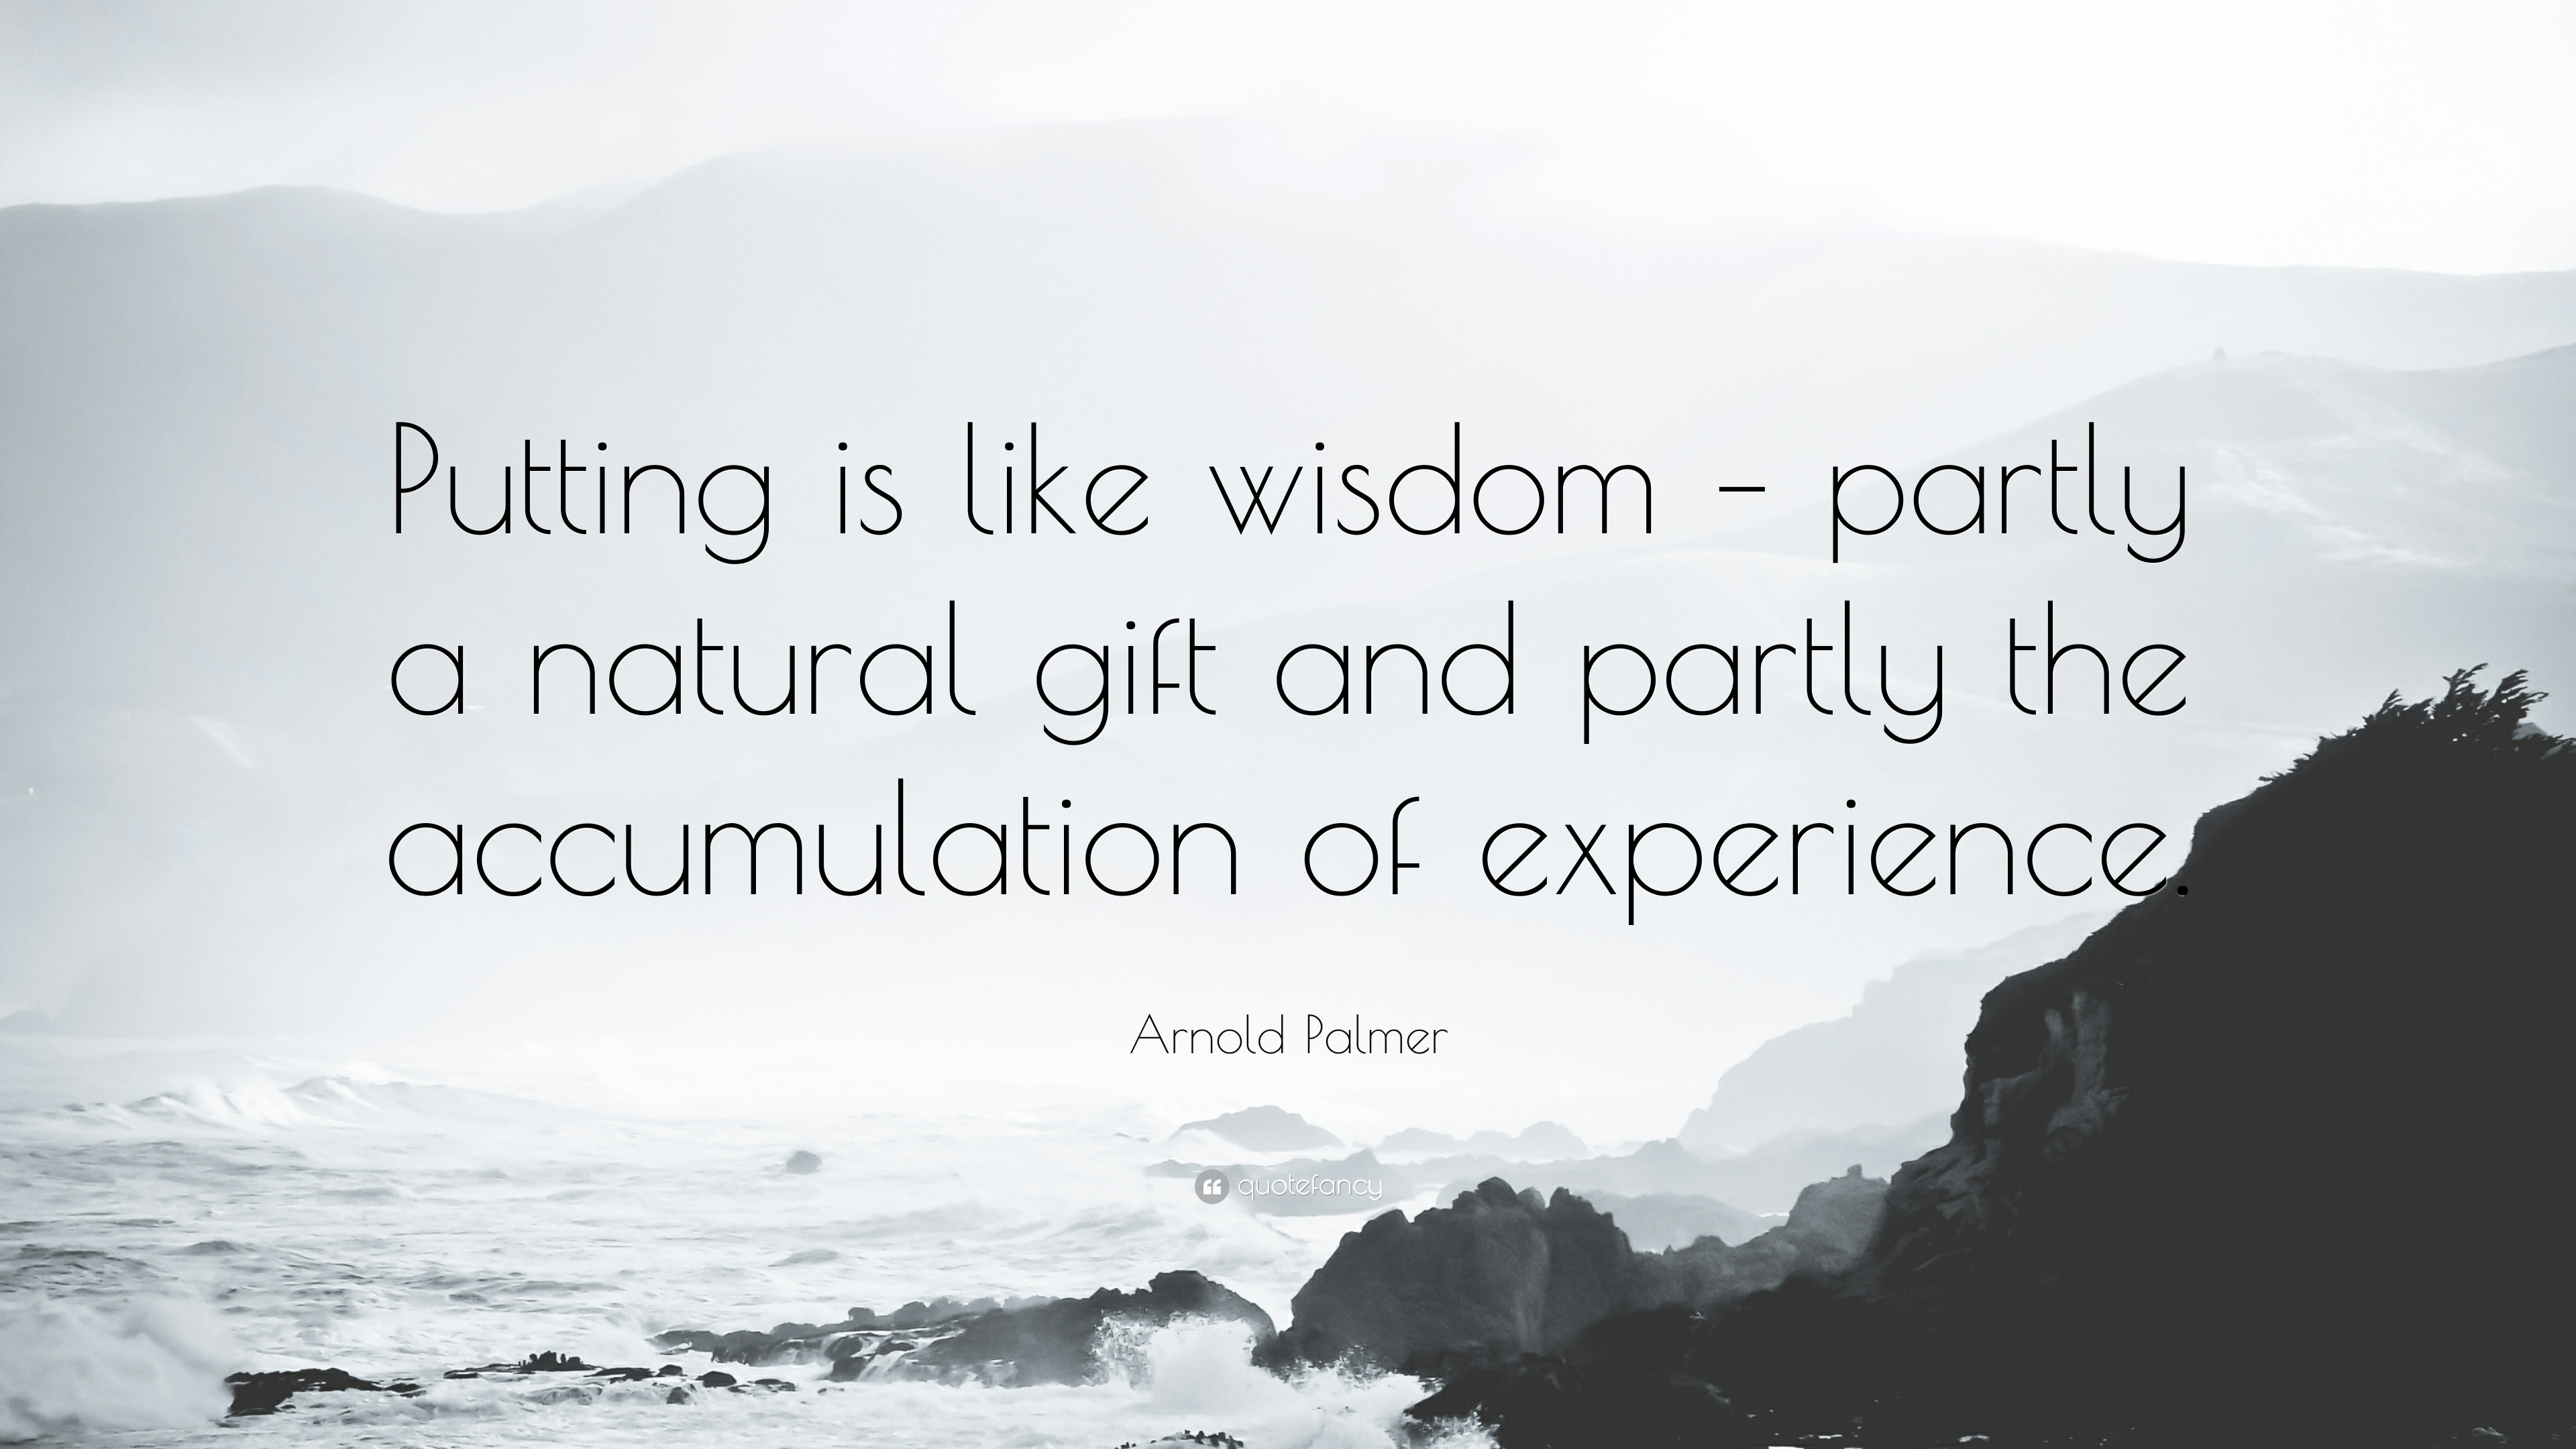 Good Arnold Palmer Quote: U201cPutting Is Like Wisdom U2013 Partly A Natural Gift And  Partly